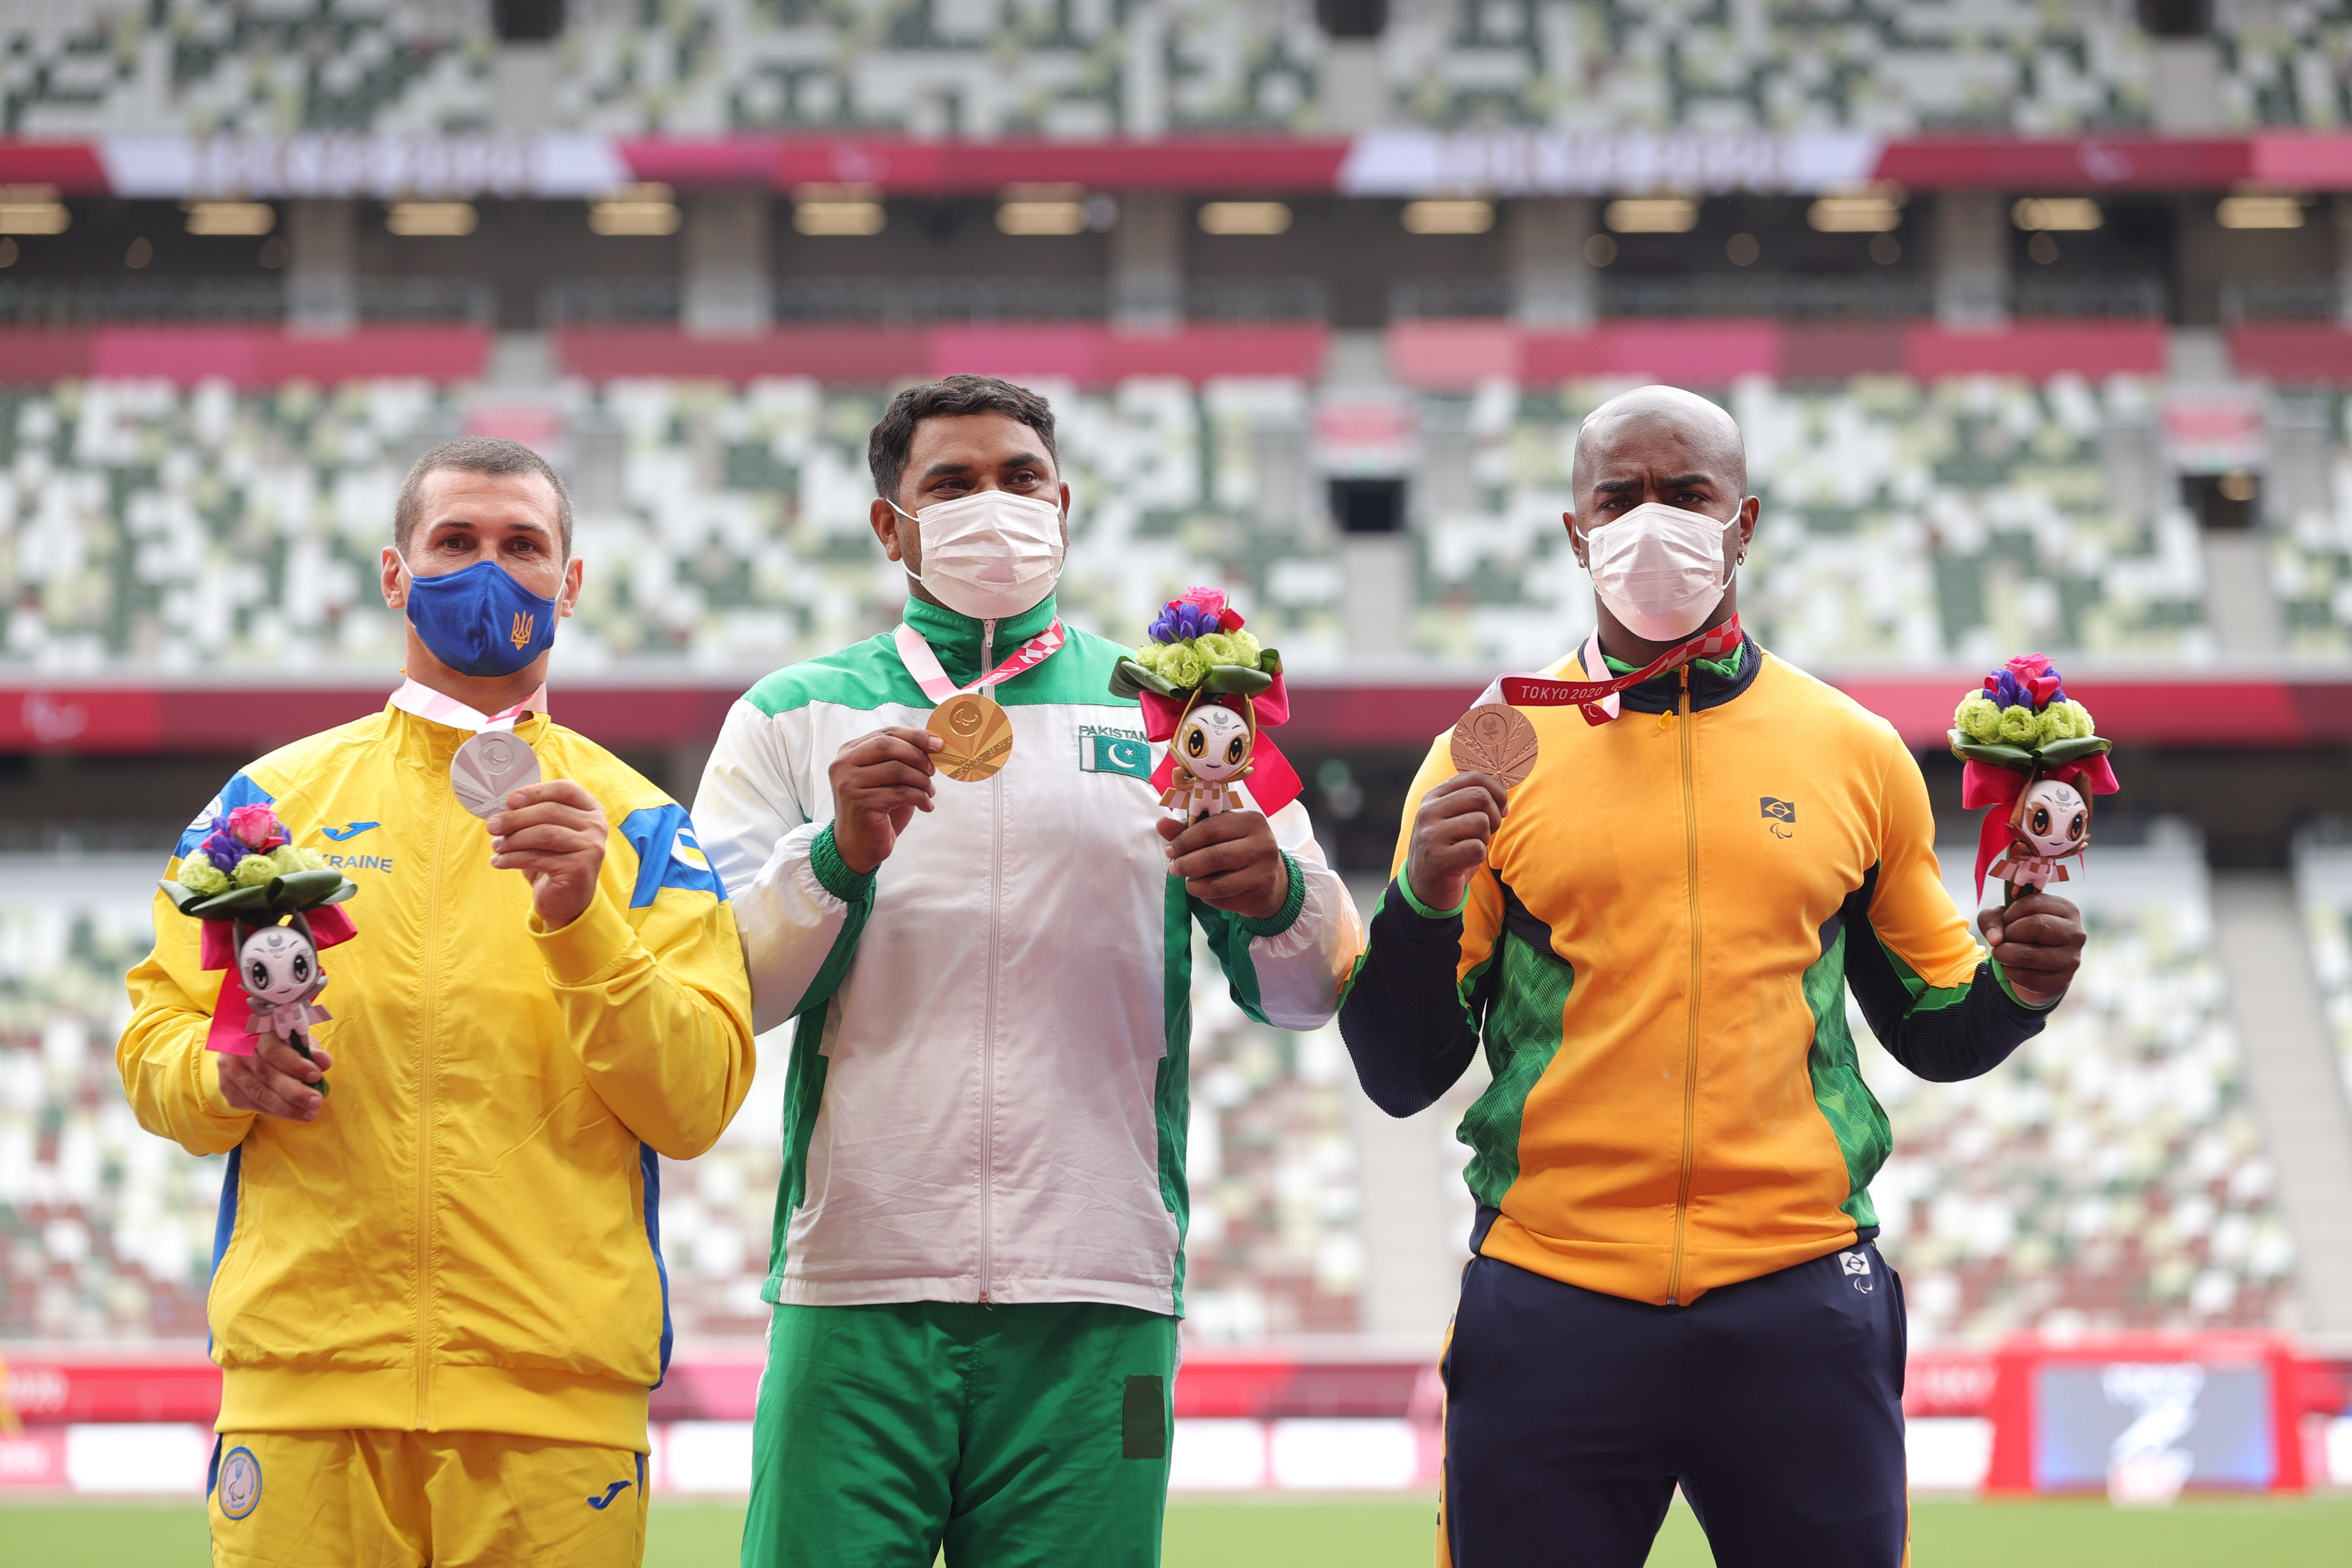 The three discus medallists on the podium. They are holding up their medals and wearing masks.